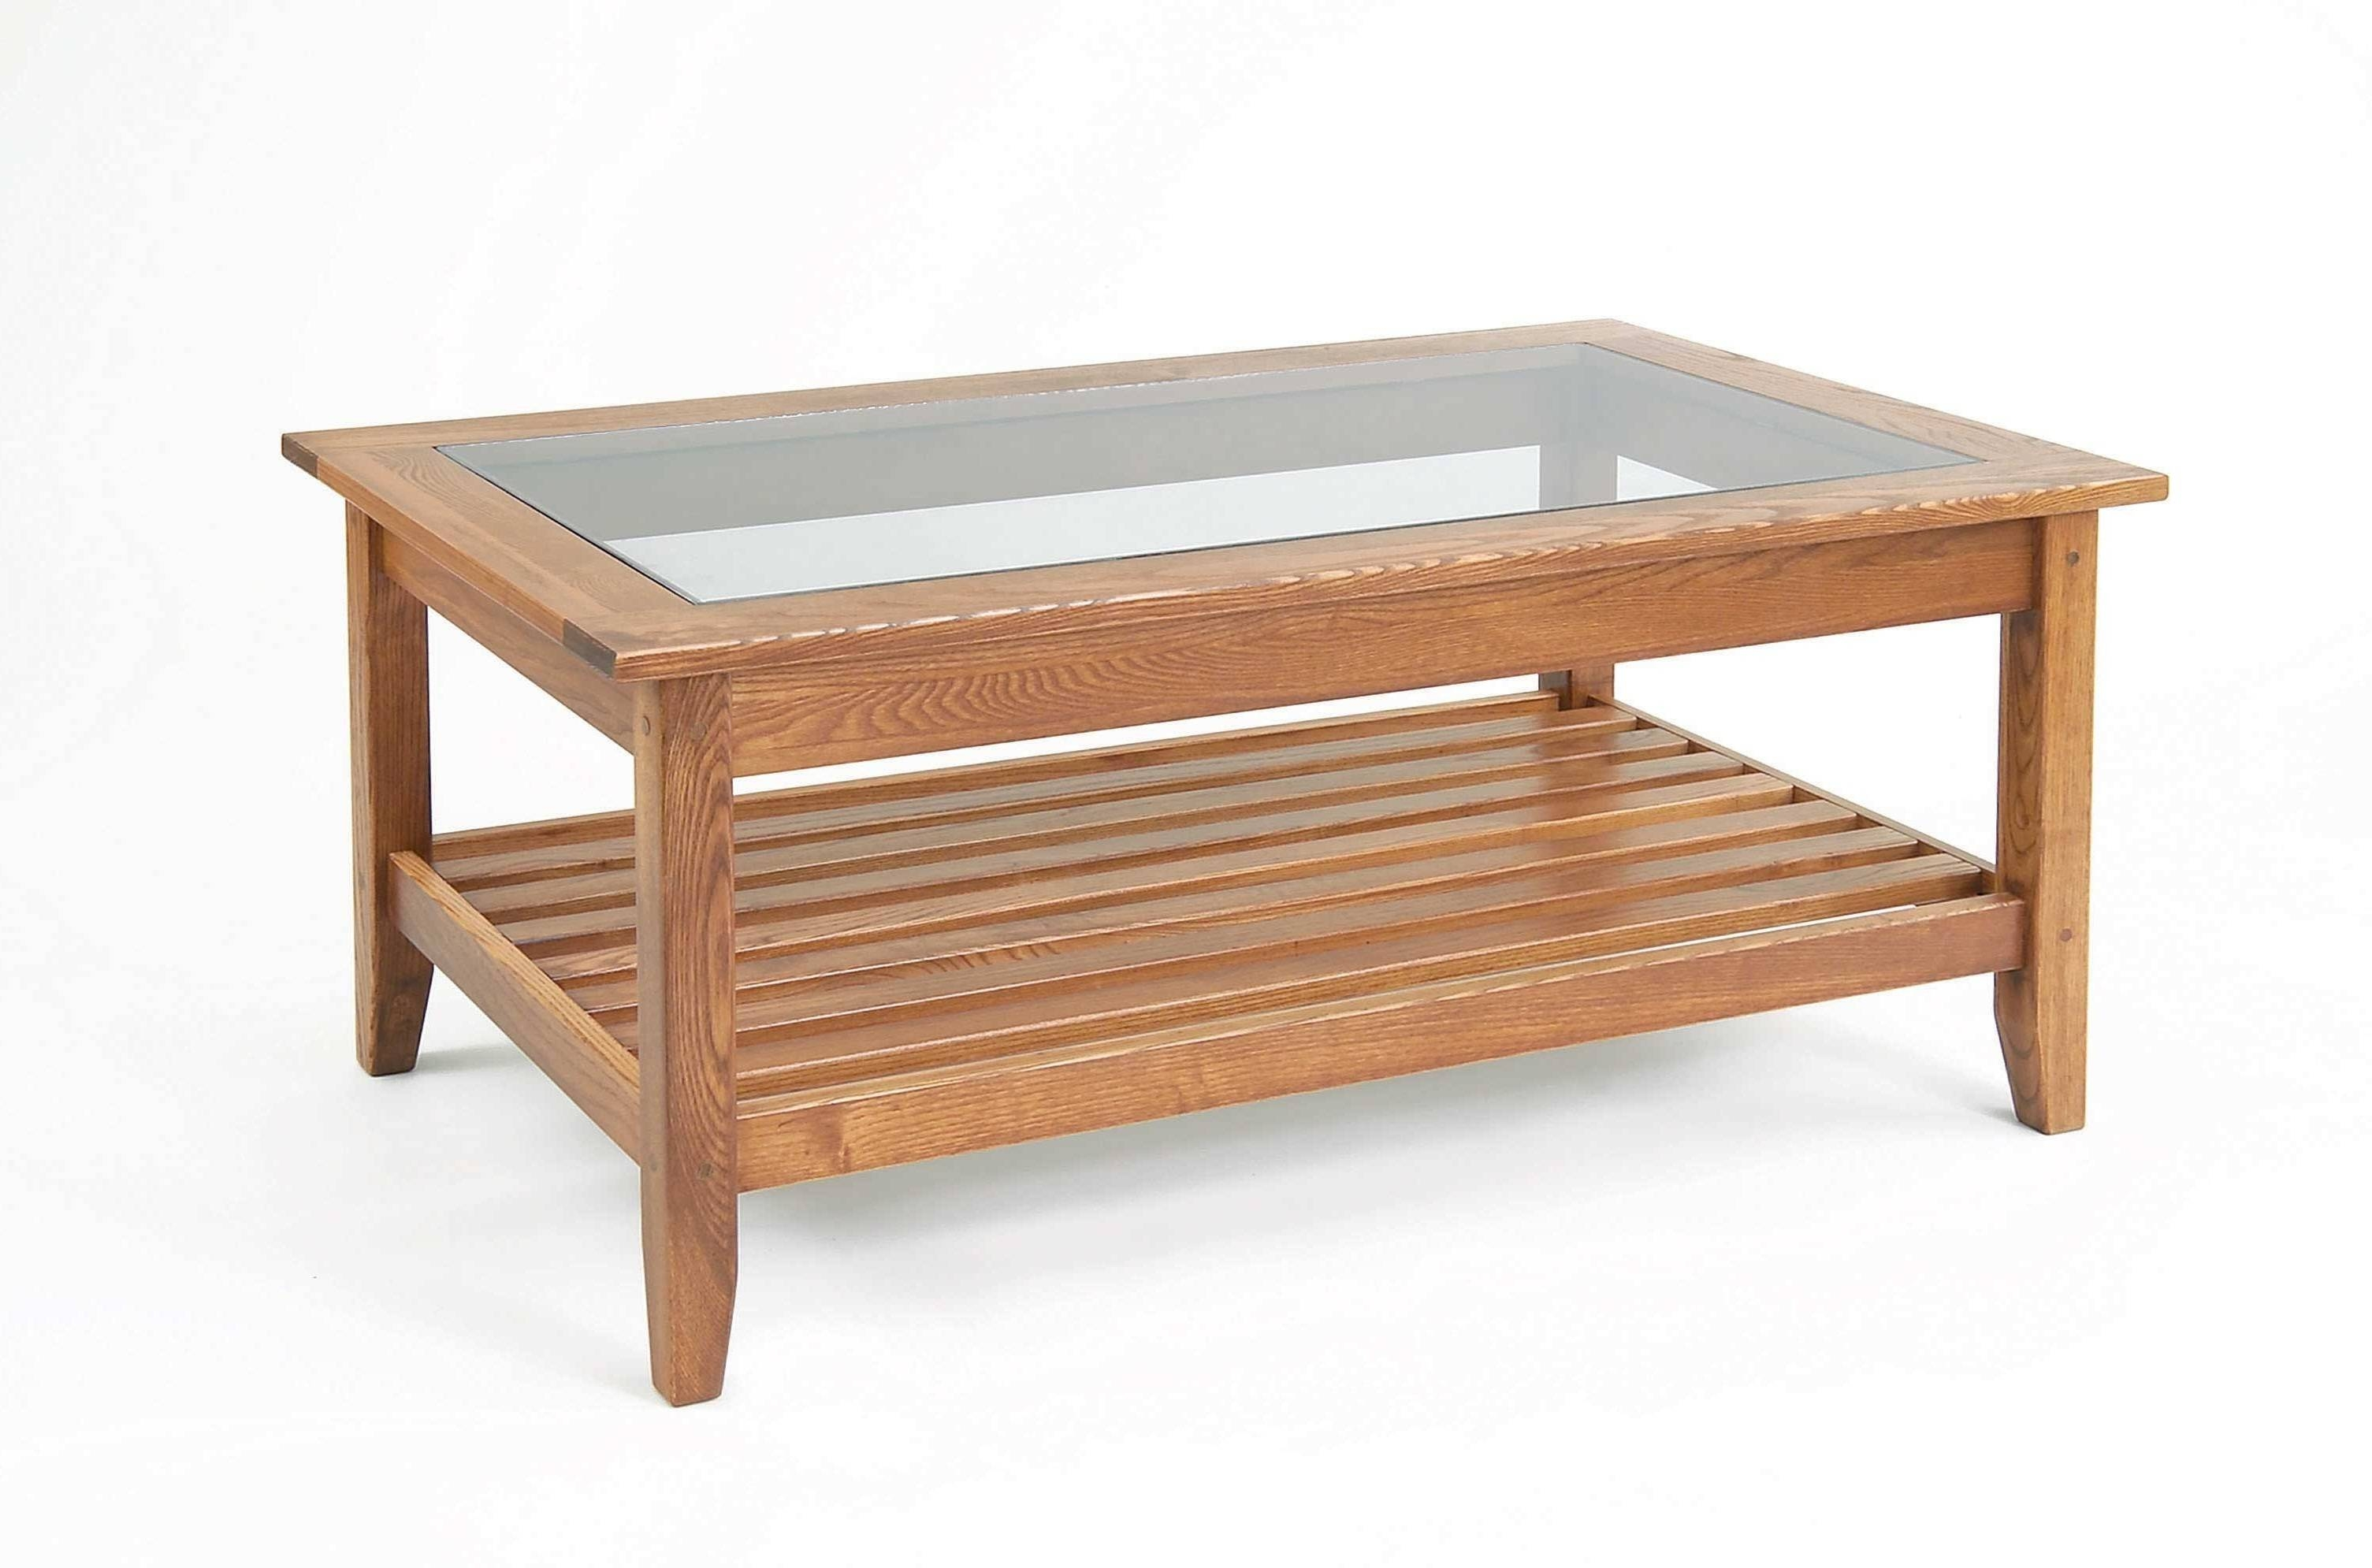 Coffee Table: Marvelous Wood And Glass Coffee Table Designs Coffee within Glass Coffee Tables With Shelf (Image 10 of 30)